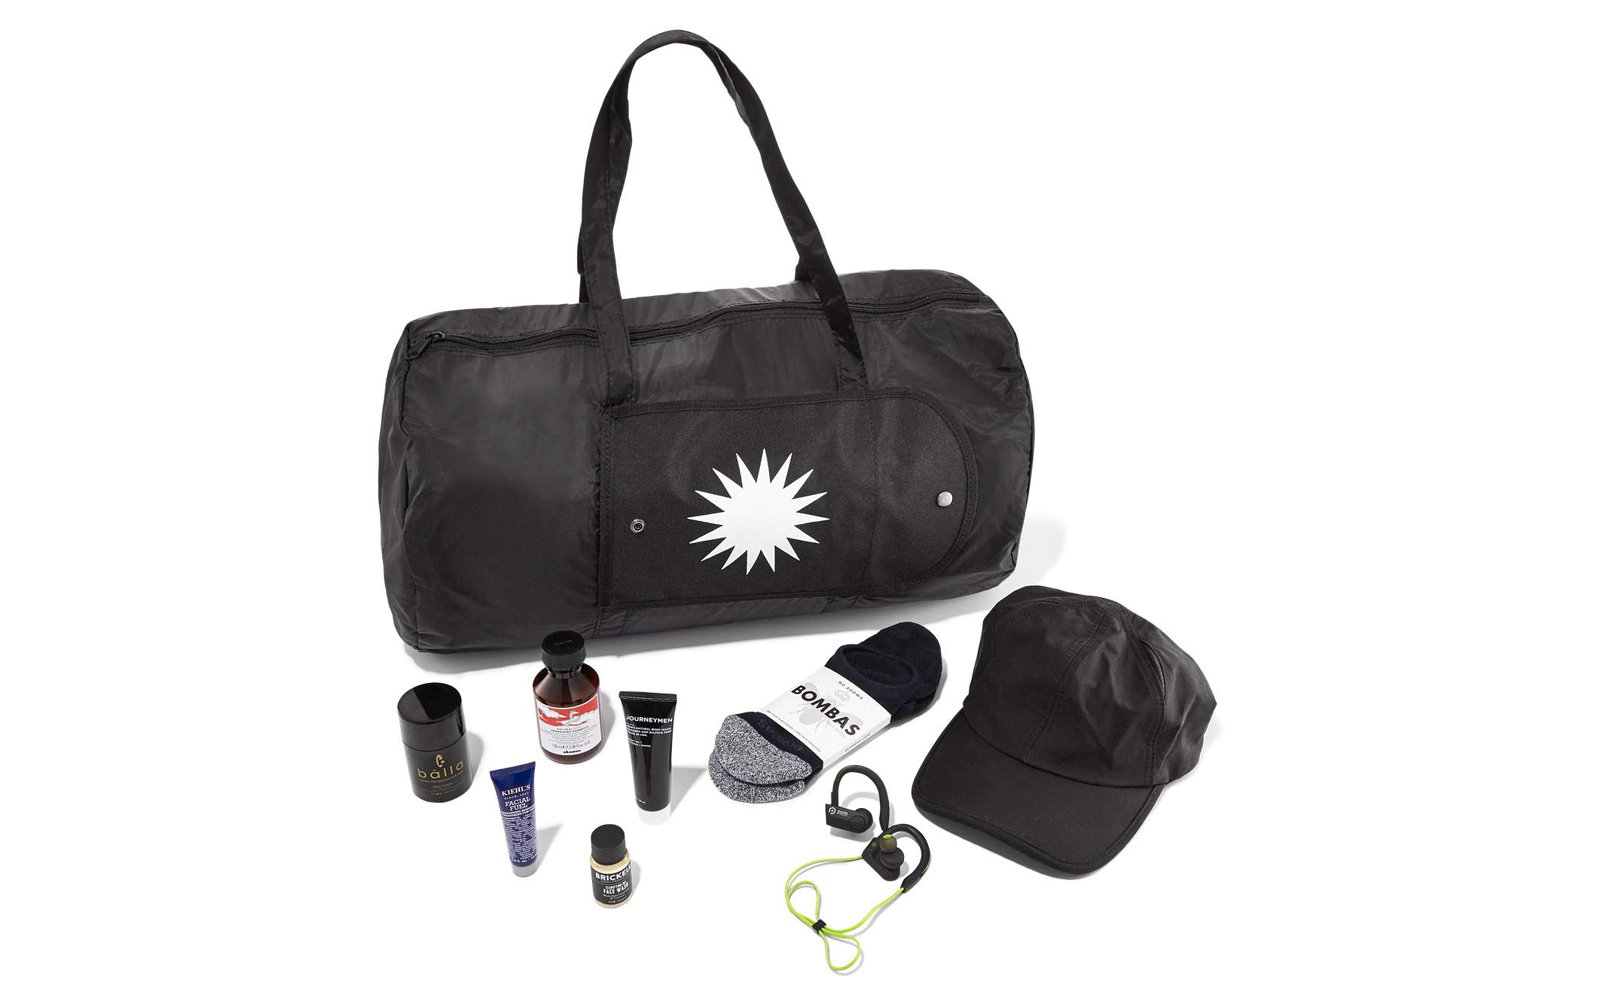 Birchbox Man Gym Bag